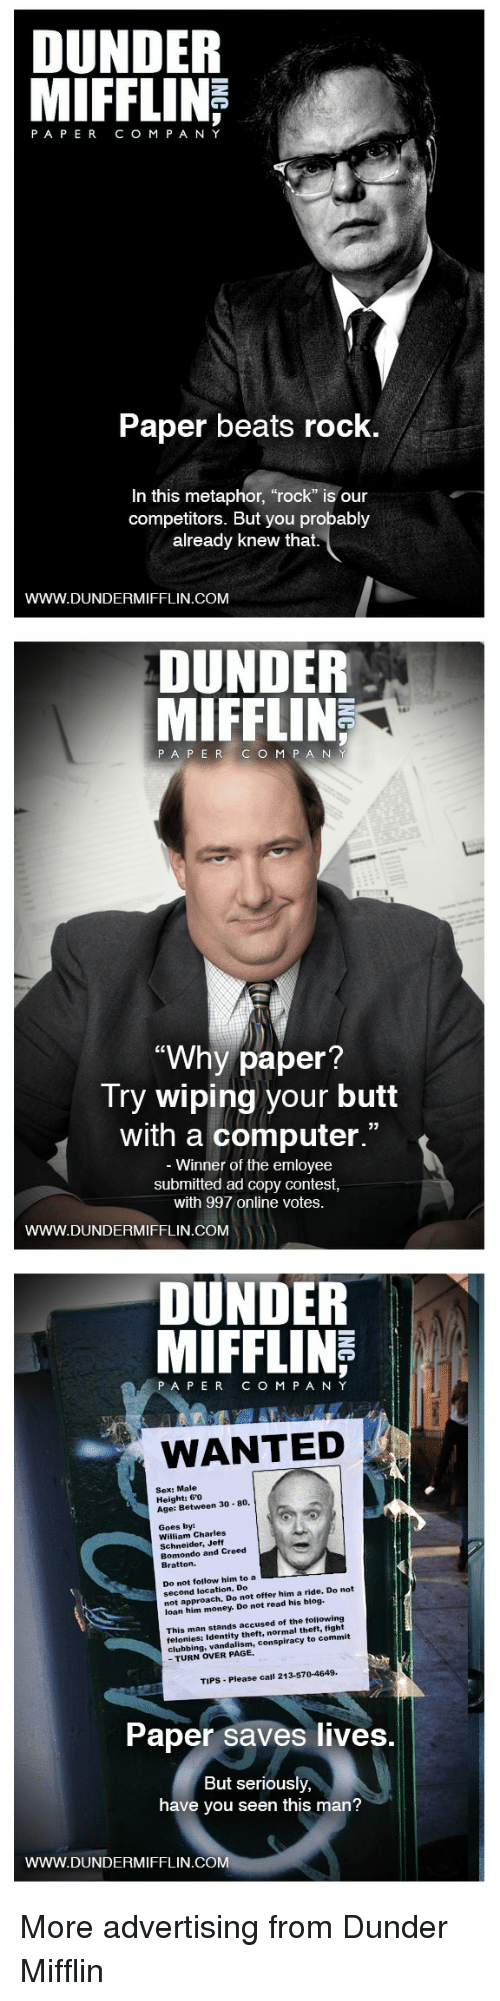 "Butt, Money, and Sex: DUNDER  PAPERCO M P A NY  Paper beats rock  In this metaphor, ""rock"" is our  competitors. But you probably  already knew that.  WWW.DUNDERMIFFLIN.COM   DUNDER  MIFFLIN  187  PA P ERC O M P A N  ""Why paper  Try wiping your butt  with a computer.""  Winner of the emloyee  submitted ad copy contest  with 997 online votes.  WWW.DUNDERMIFFLIN.COM   DUNDER  MIFFLINE  PAPERCOM PANY  WANTED  Sex: Male  Height: 60  Age: Between 30 80.  Goes by  William Charles  Schneider, Jeff  Bomondo and Creed  Bratton.  Do not follow him to a EEE  second location. Do  not approach. Do not offer him a ride. Do not  loan him money. Do not read his blog.  This man stands accused of the following  felonies: Identity theft, normal theft, fight  clubbing, vandalism, conspiracy to commit  - TURN OVER PAGE.  TIPS-Please call 213-570-4649  Paper saves lives.  But seriously,  have you seen this man?  WWW.DUNDERMIFFLIN.COM More advertising from Dunder Mifflin"